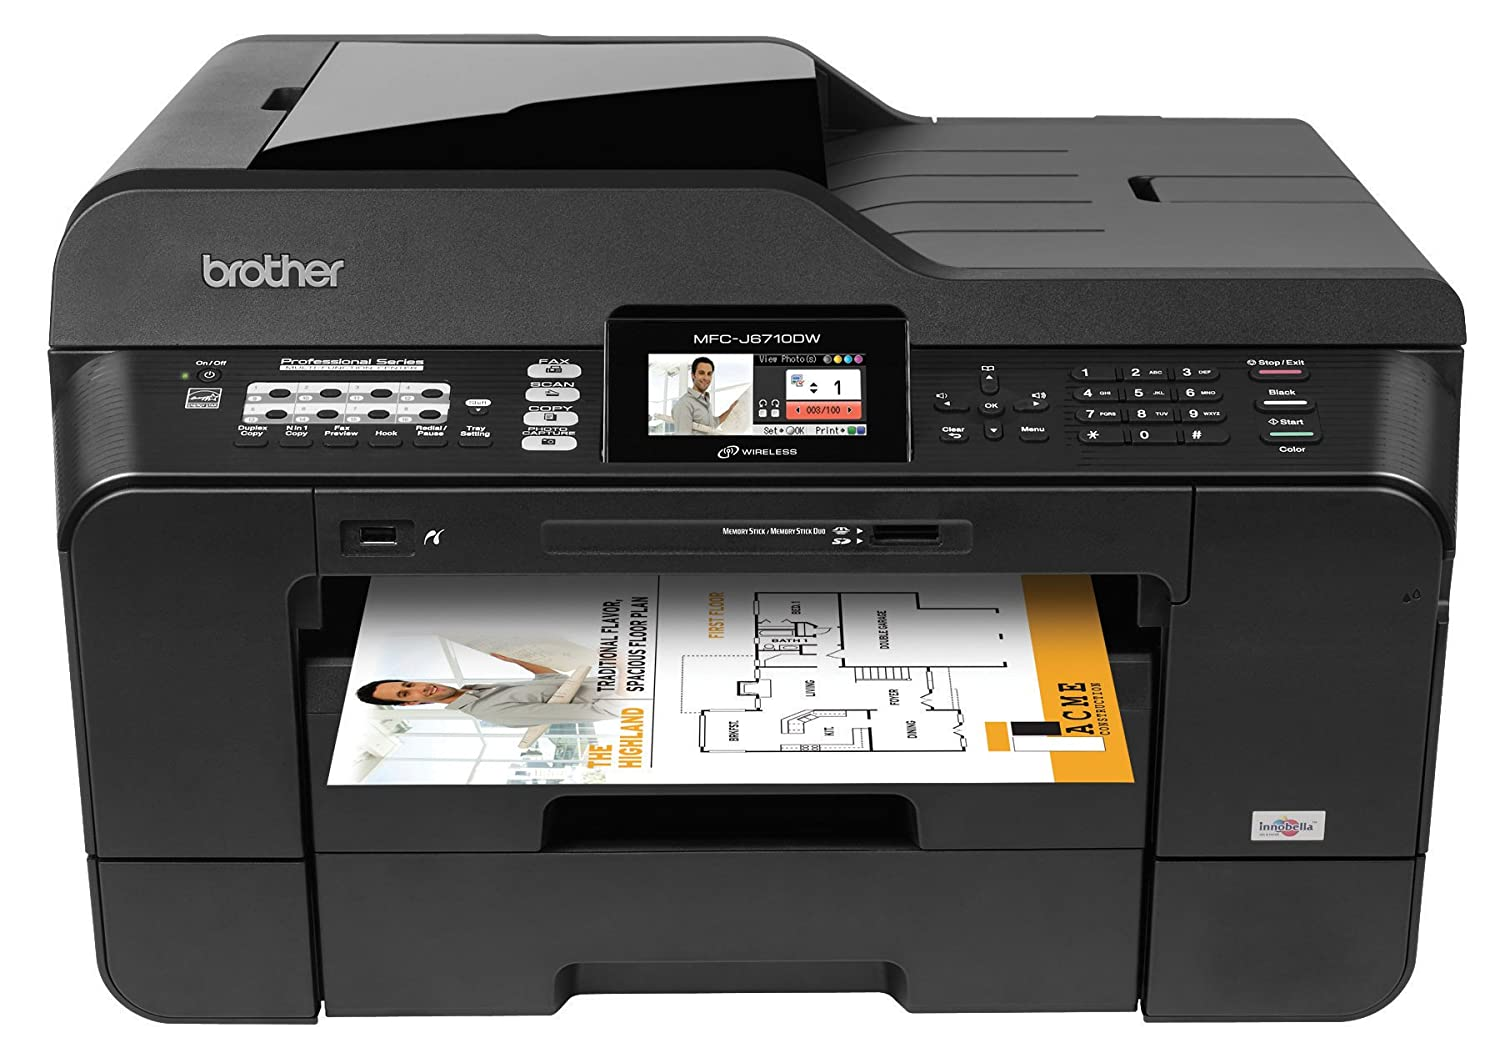 Printer Brother Mfcj6710dw Business Inkjet Printer